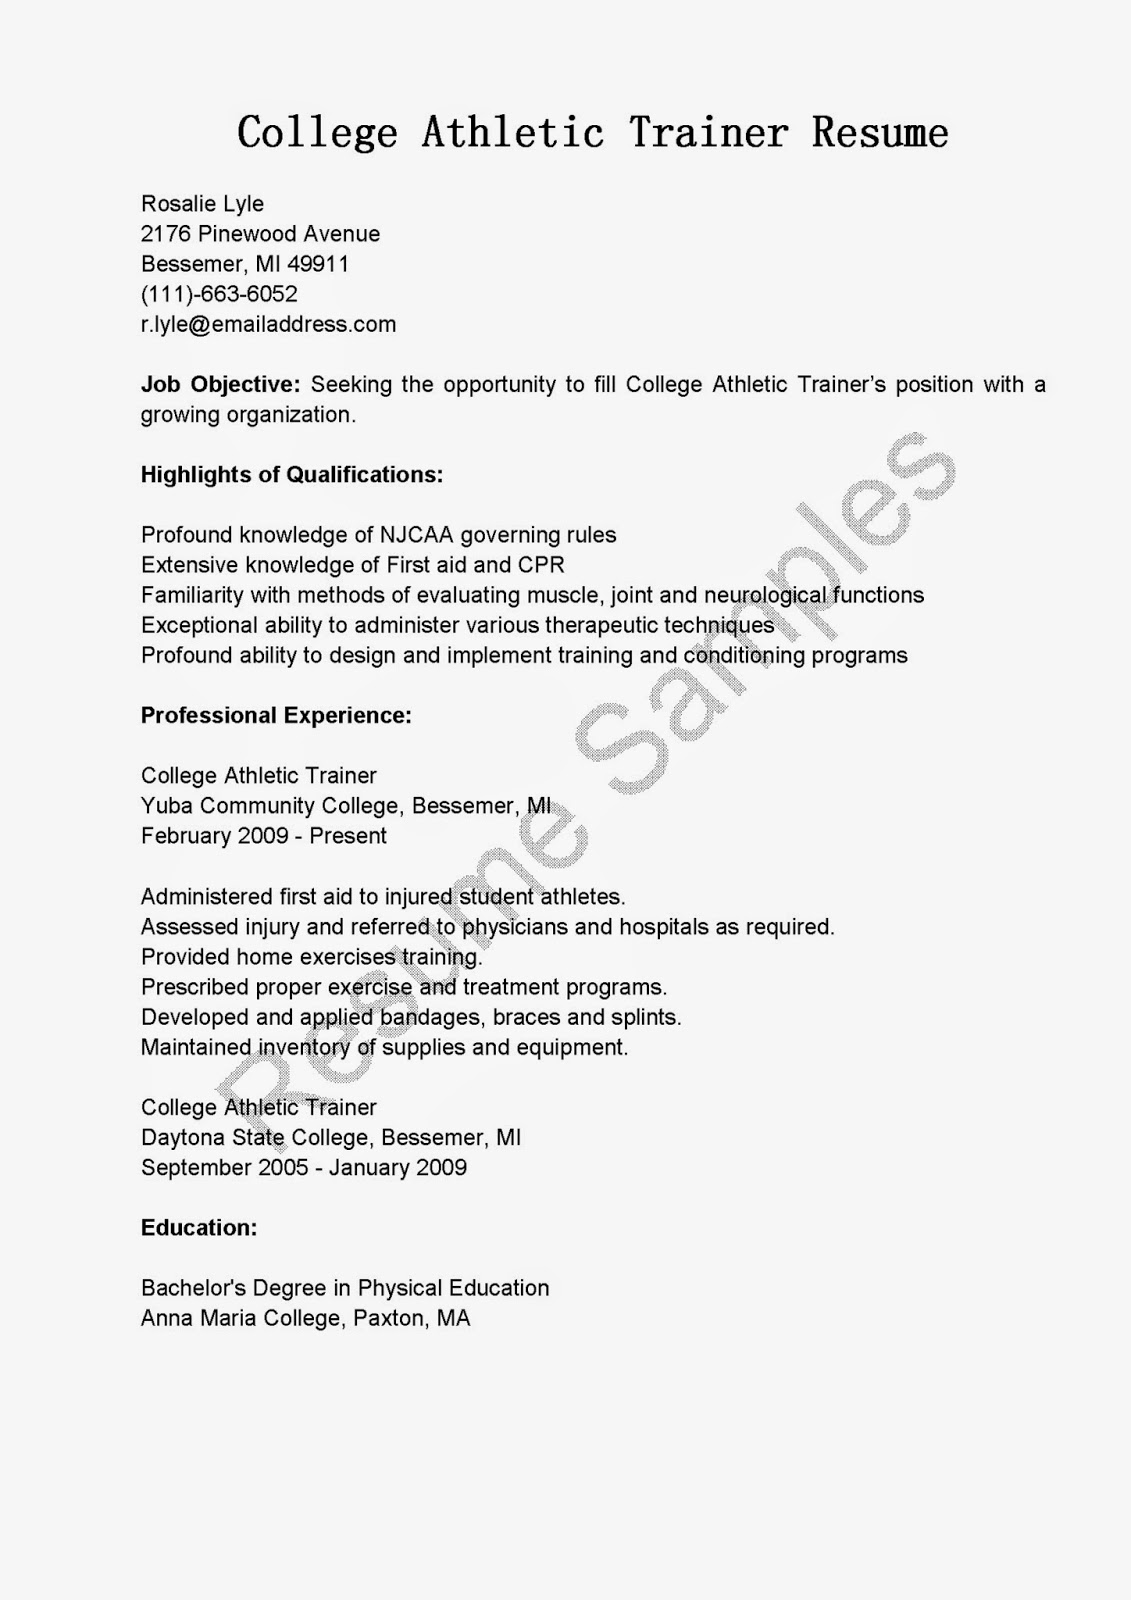 Resume Samples College Athletic Trainer Resume Sample